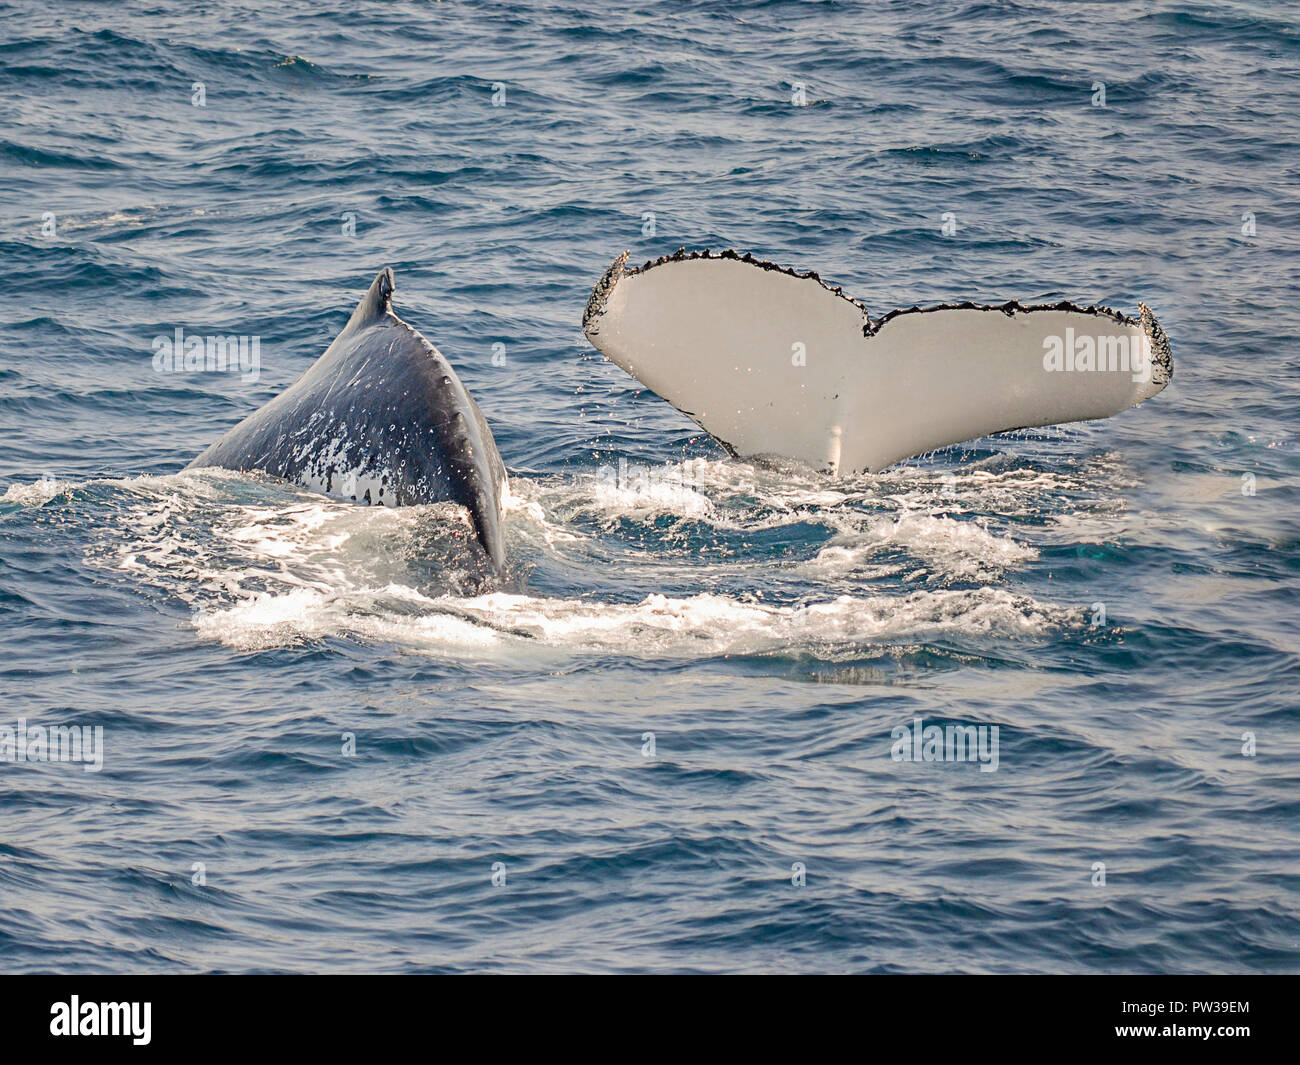 couple of whales swimming off shore Sydney in Australia, one is showing a tale during the diving, due balene nuotano al largo di Sydney in Australia - Stock Image